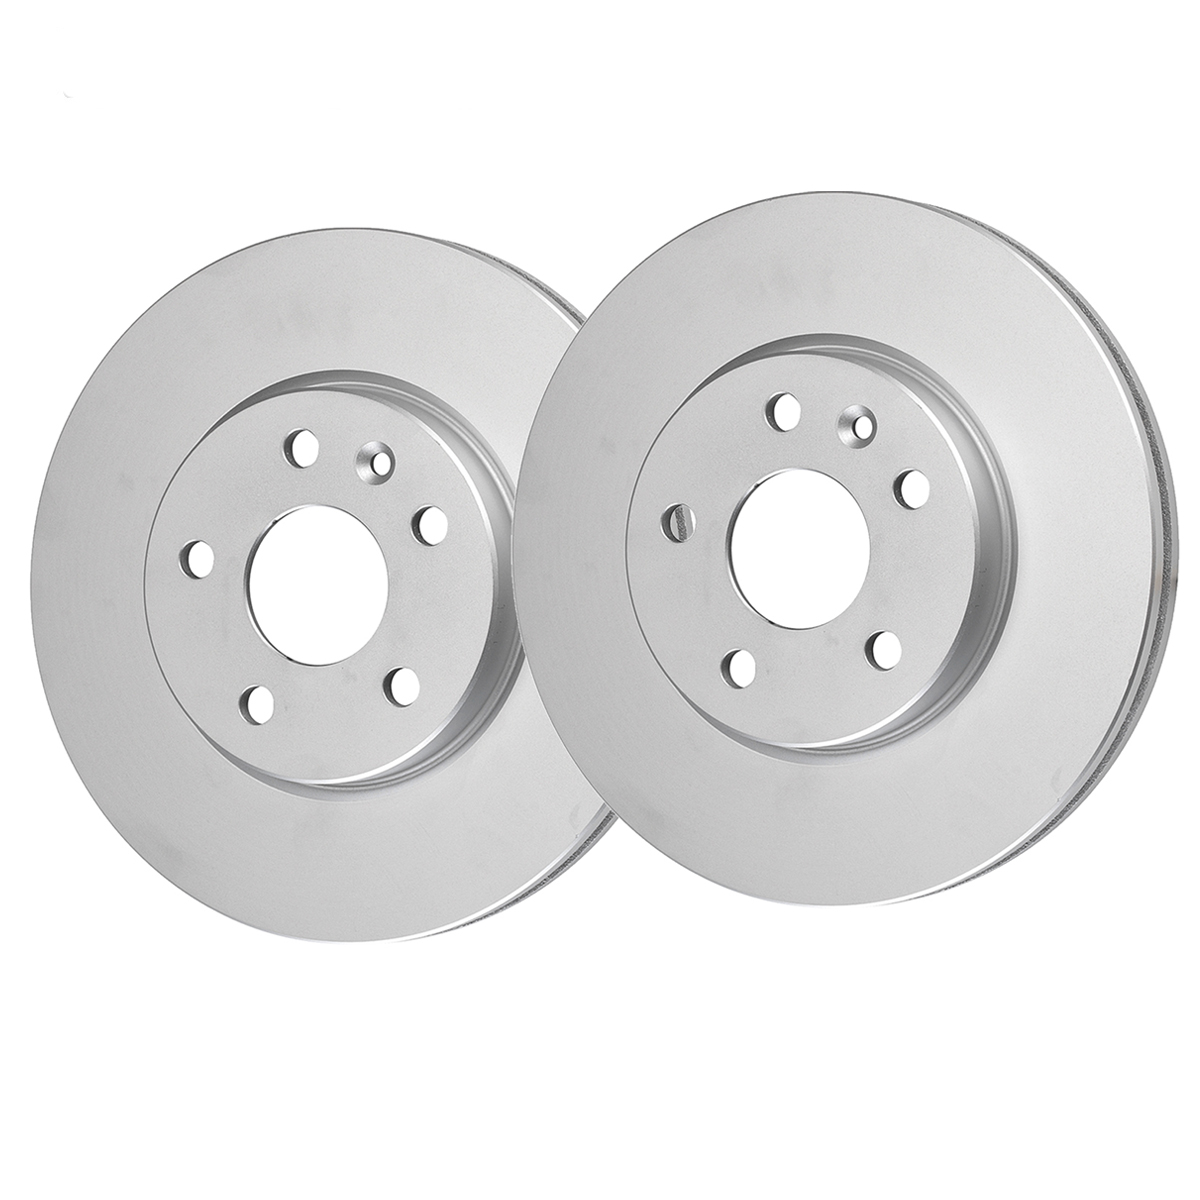 2 OEM Replacement Extra-Life Heavy Duty Brake Rotors Rear Rotors - SHIPS FROM USA!!-Tax Incl. 5lug LR4 Range Rover Sport LR3